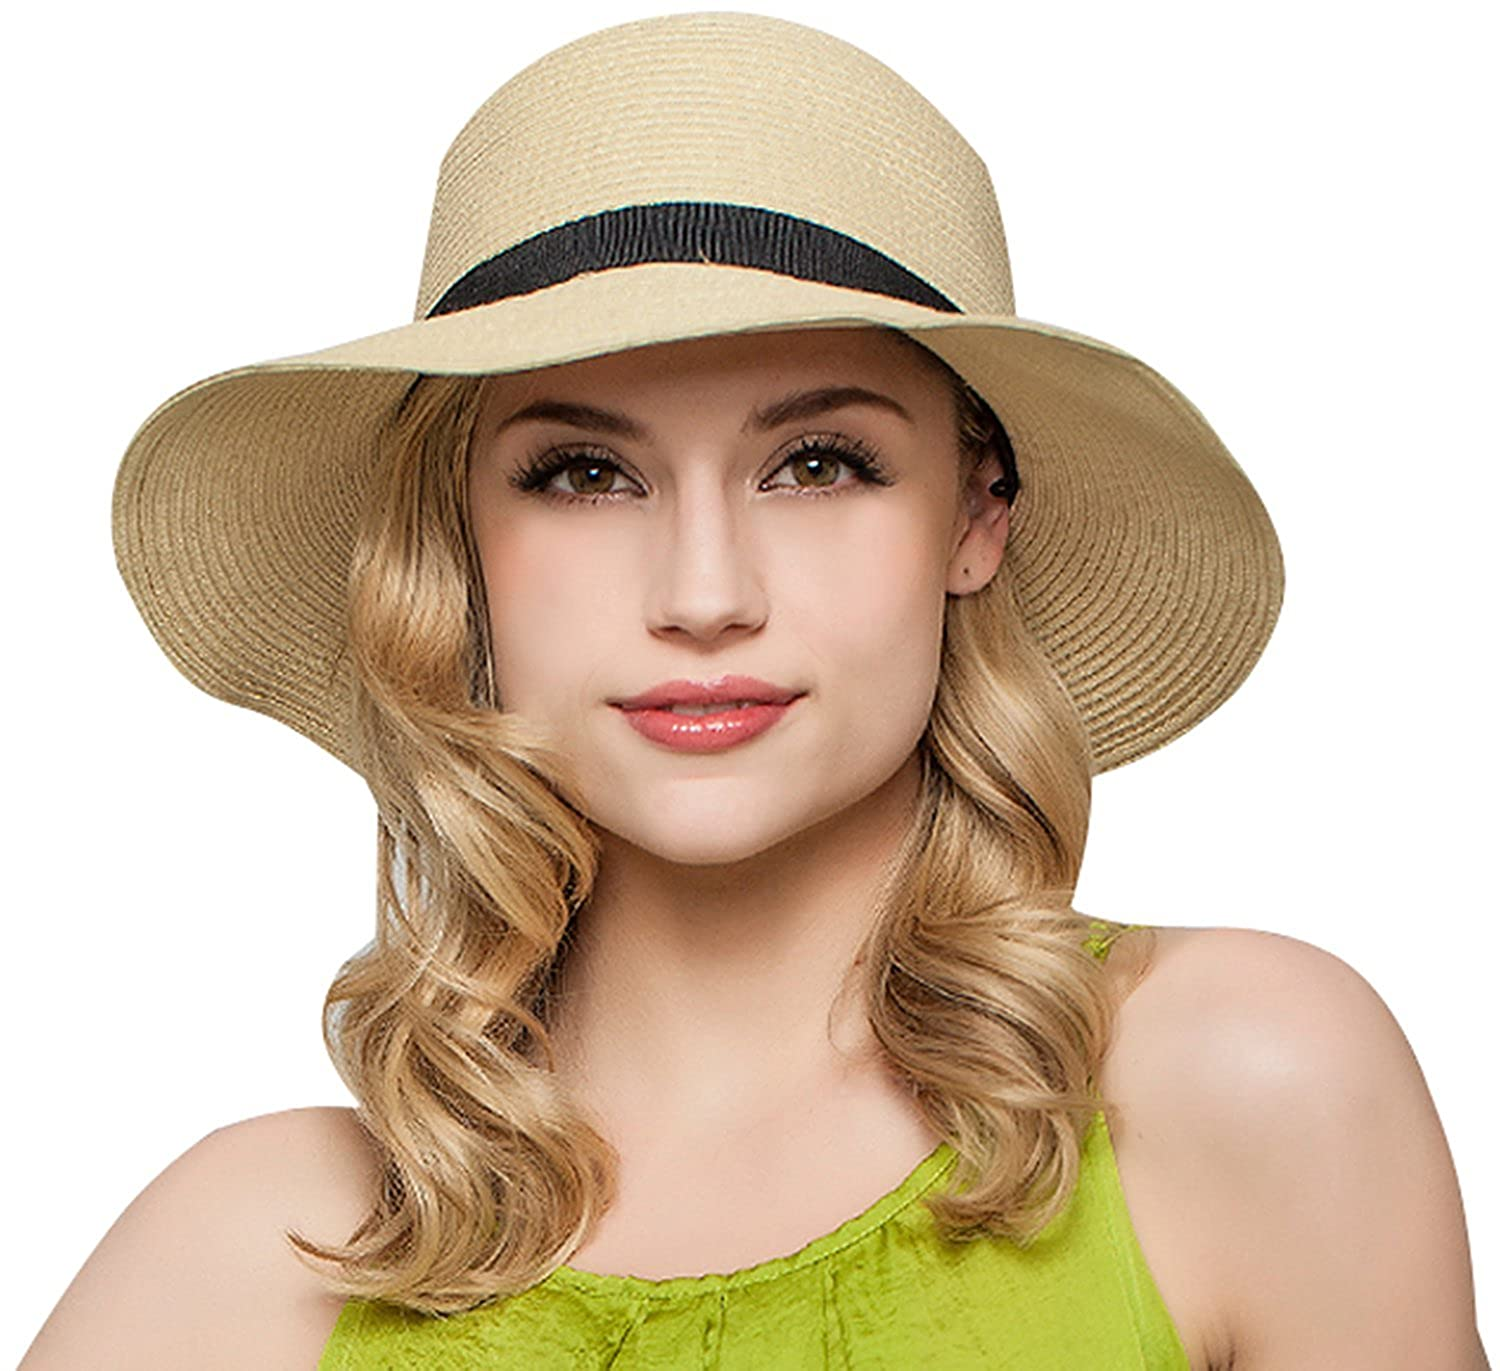 JOSENI Women Floppy Sun Beach Straw Hats Wide Brim Packable Summer Cap  (Beige) at Amazon Women s Clothing store  7f3029be359